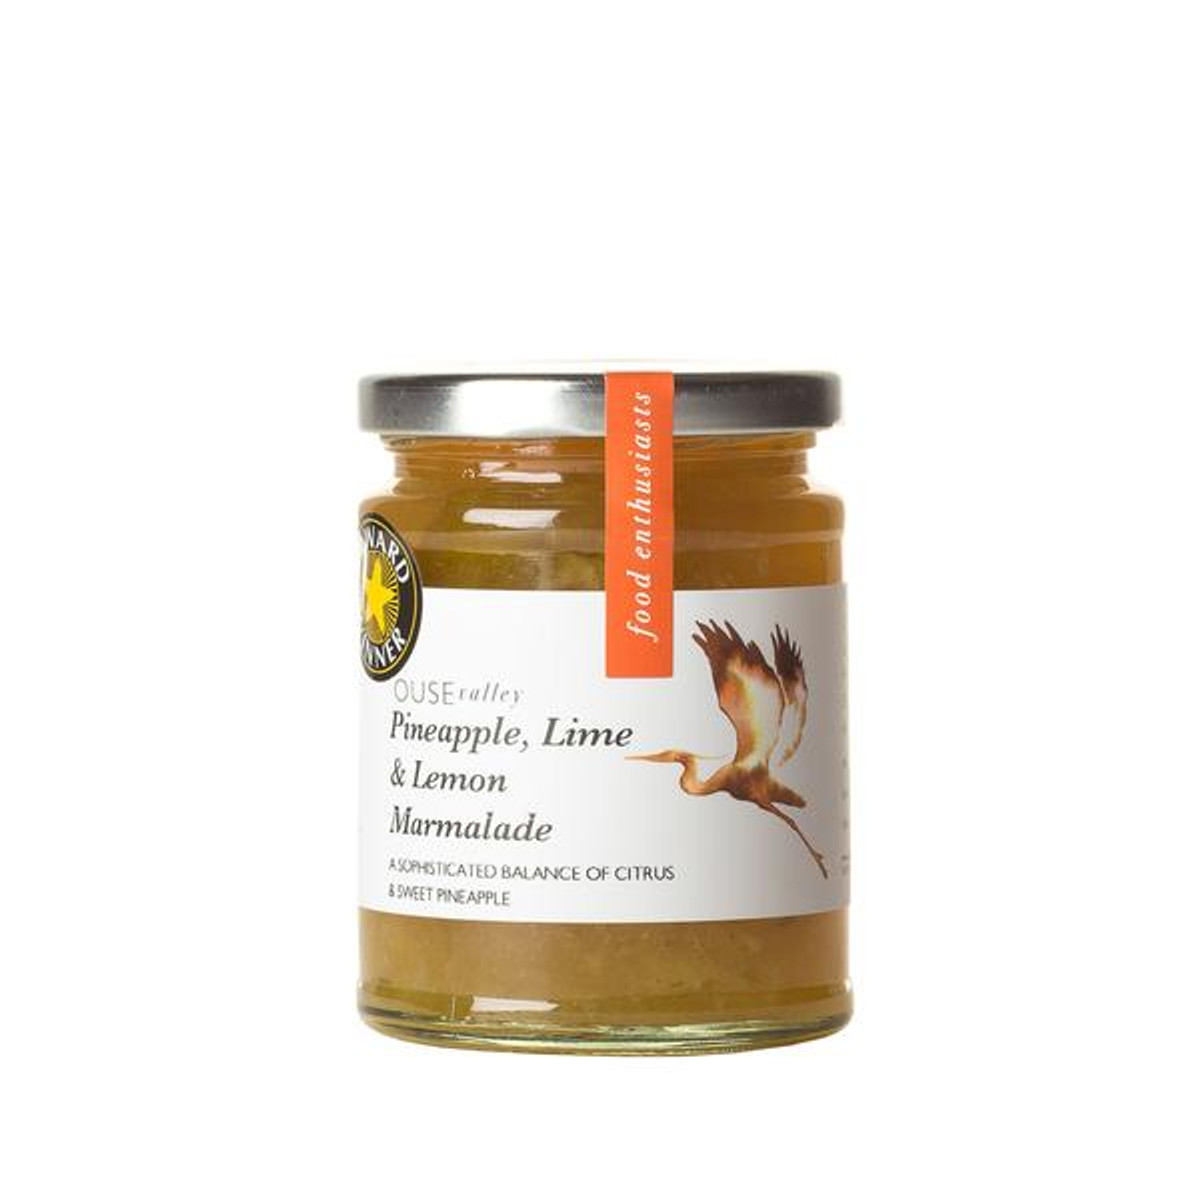 Pineapple, Lime & Lemon Marmalade